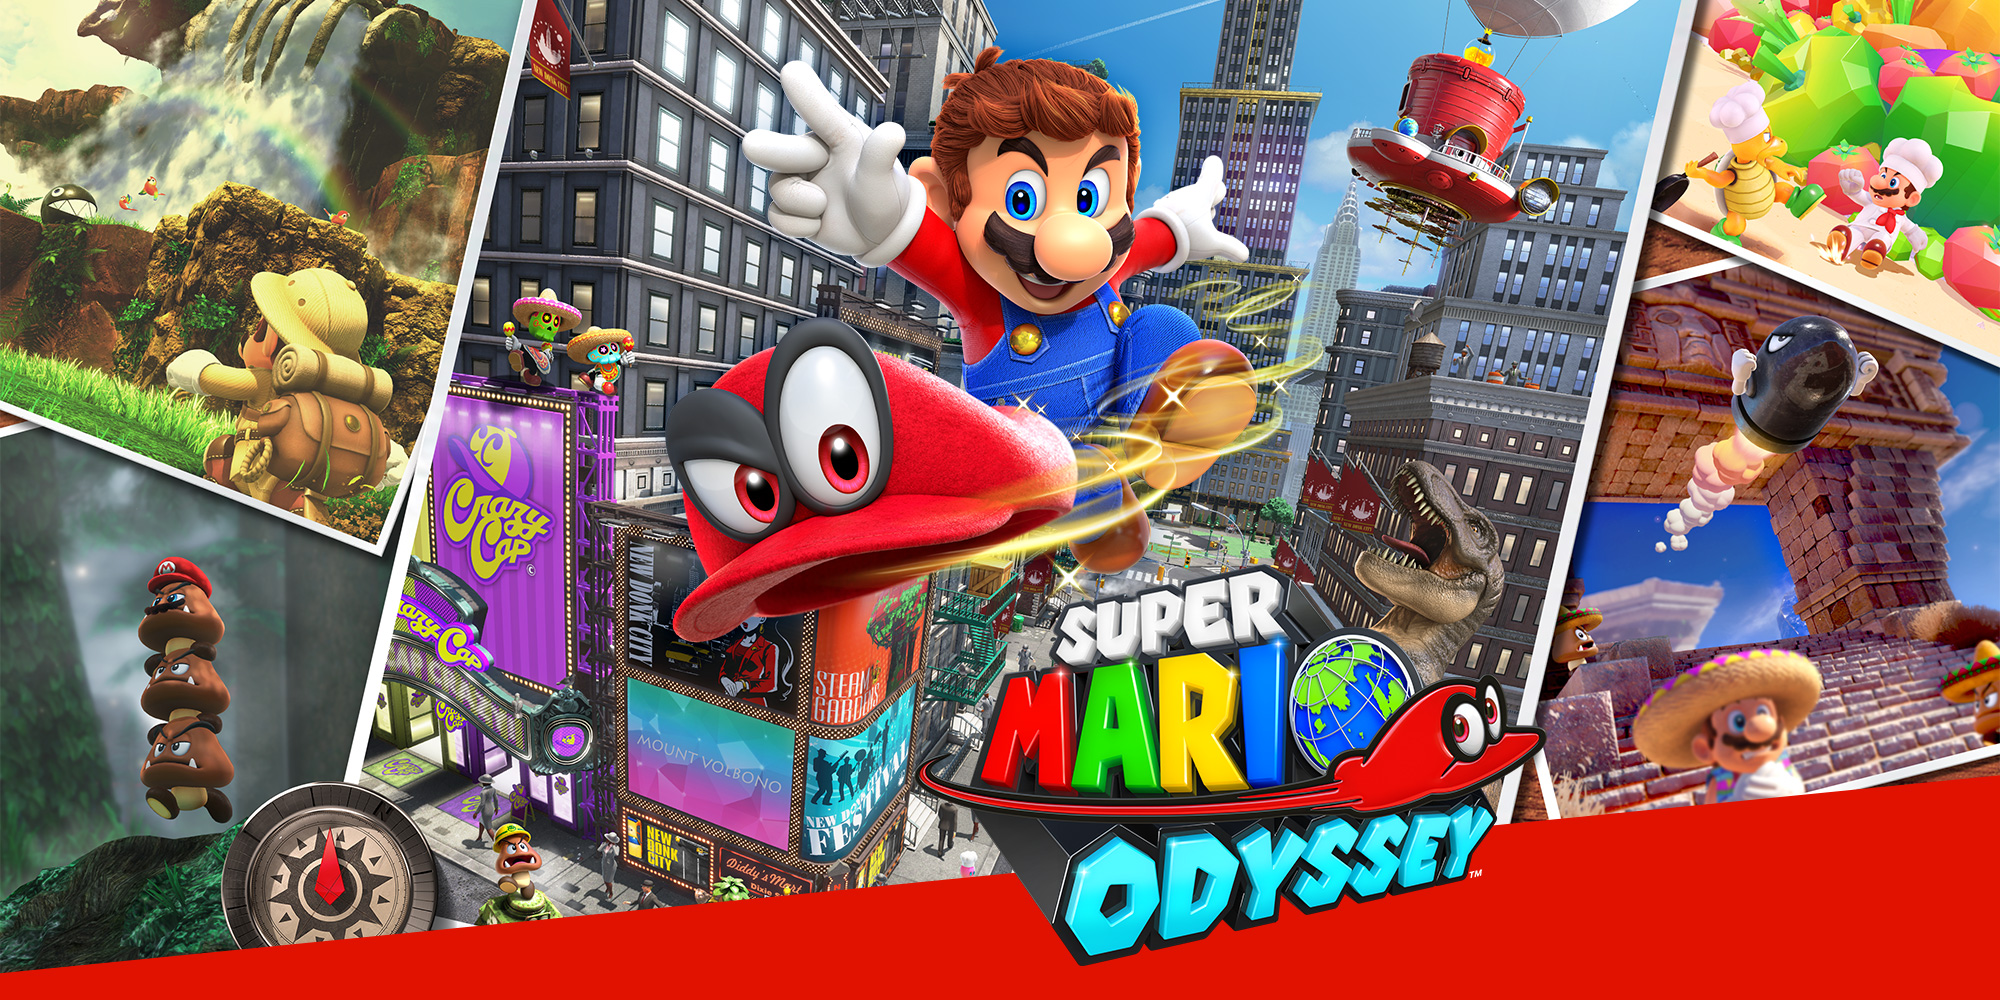 Nintendo Switch games at $38 for today only: Mario, Zelda, Splatoon 2, Kirby, more